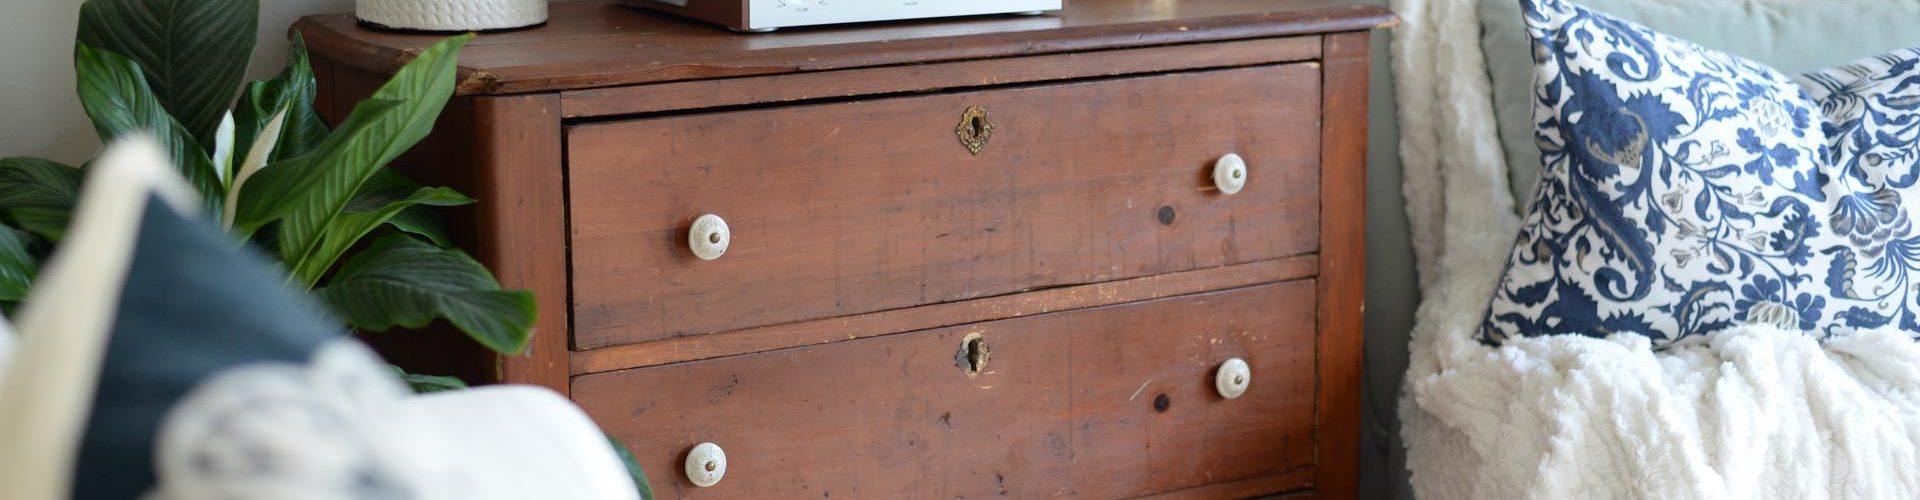 how to make drawers smells fresh